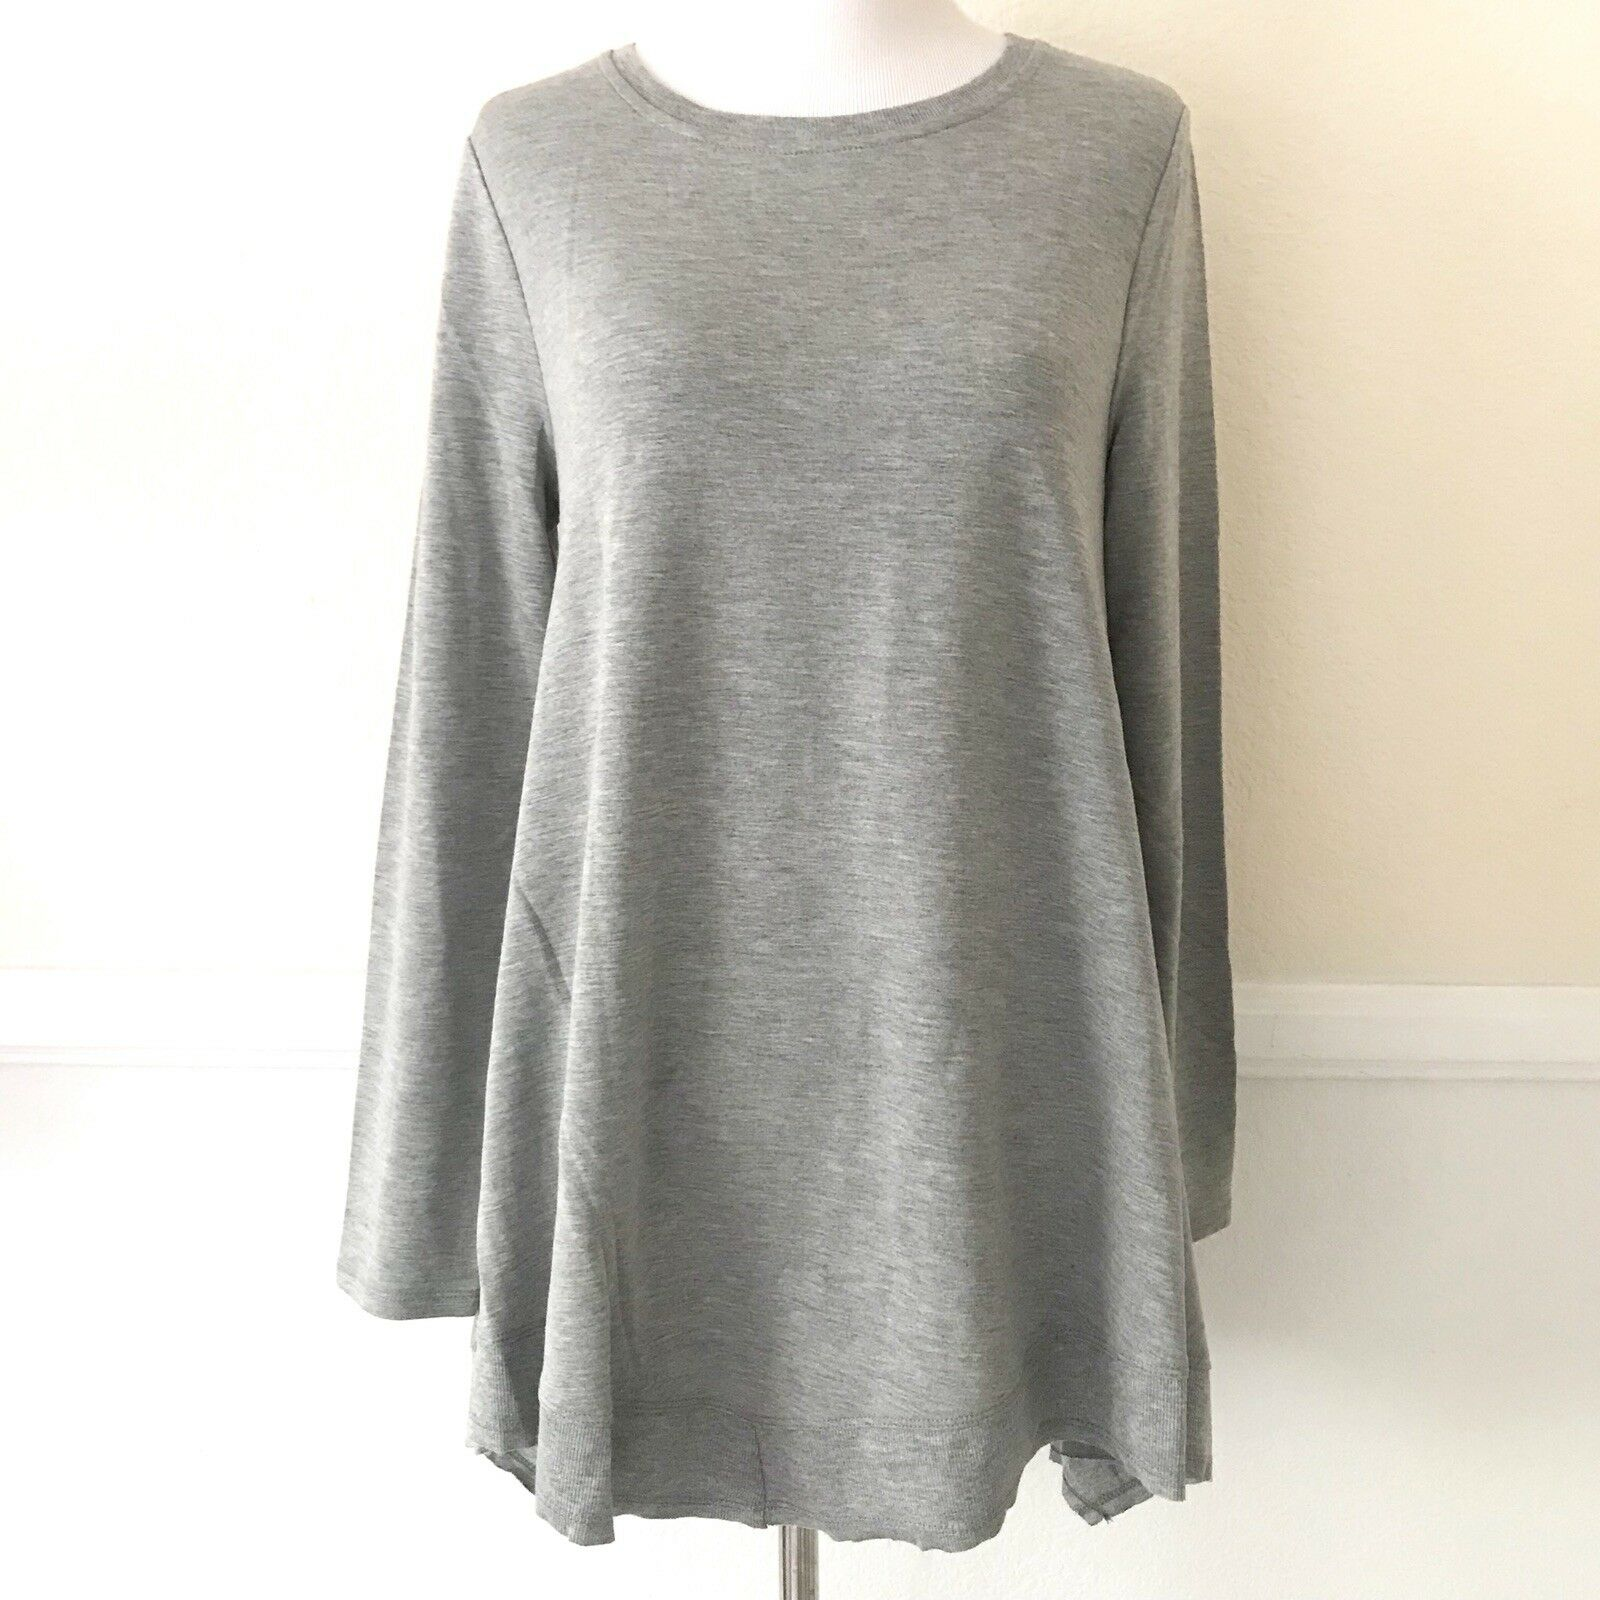 19d888b2080 Cupio Womens Tunic Top Size SMALL Gray Long Sleeves Loose Blouse Fashion  Shirt